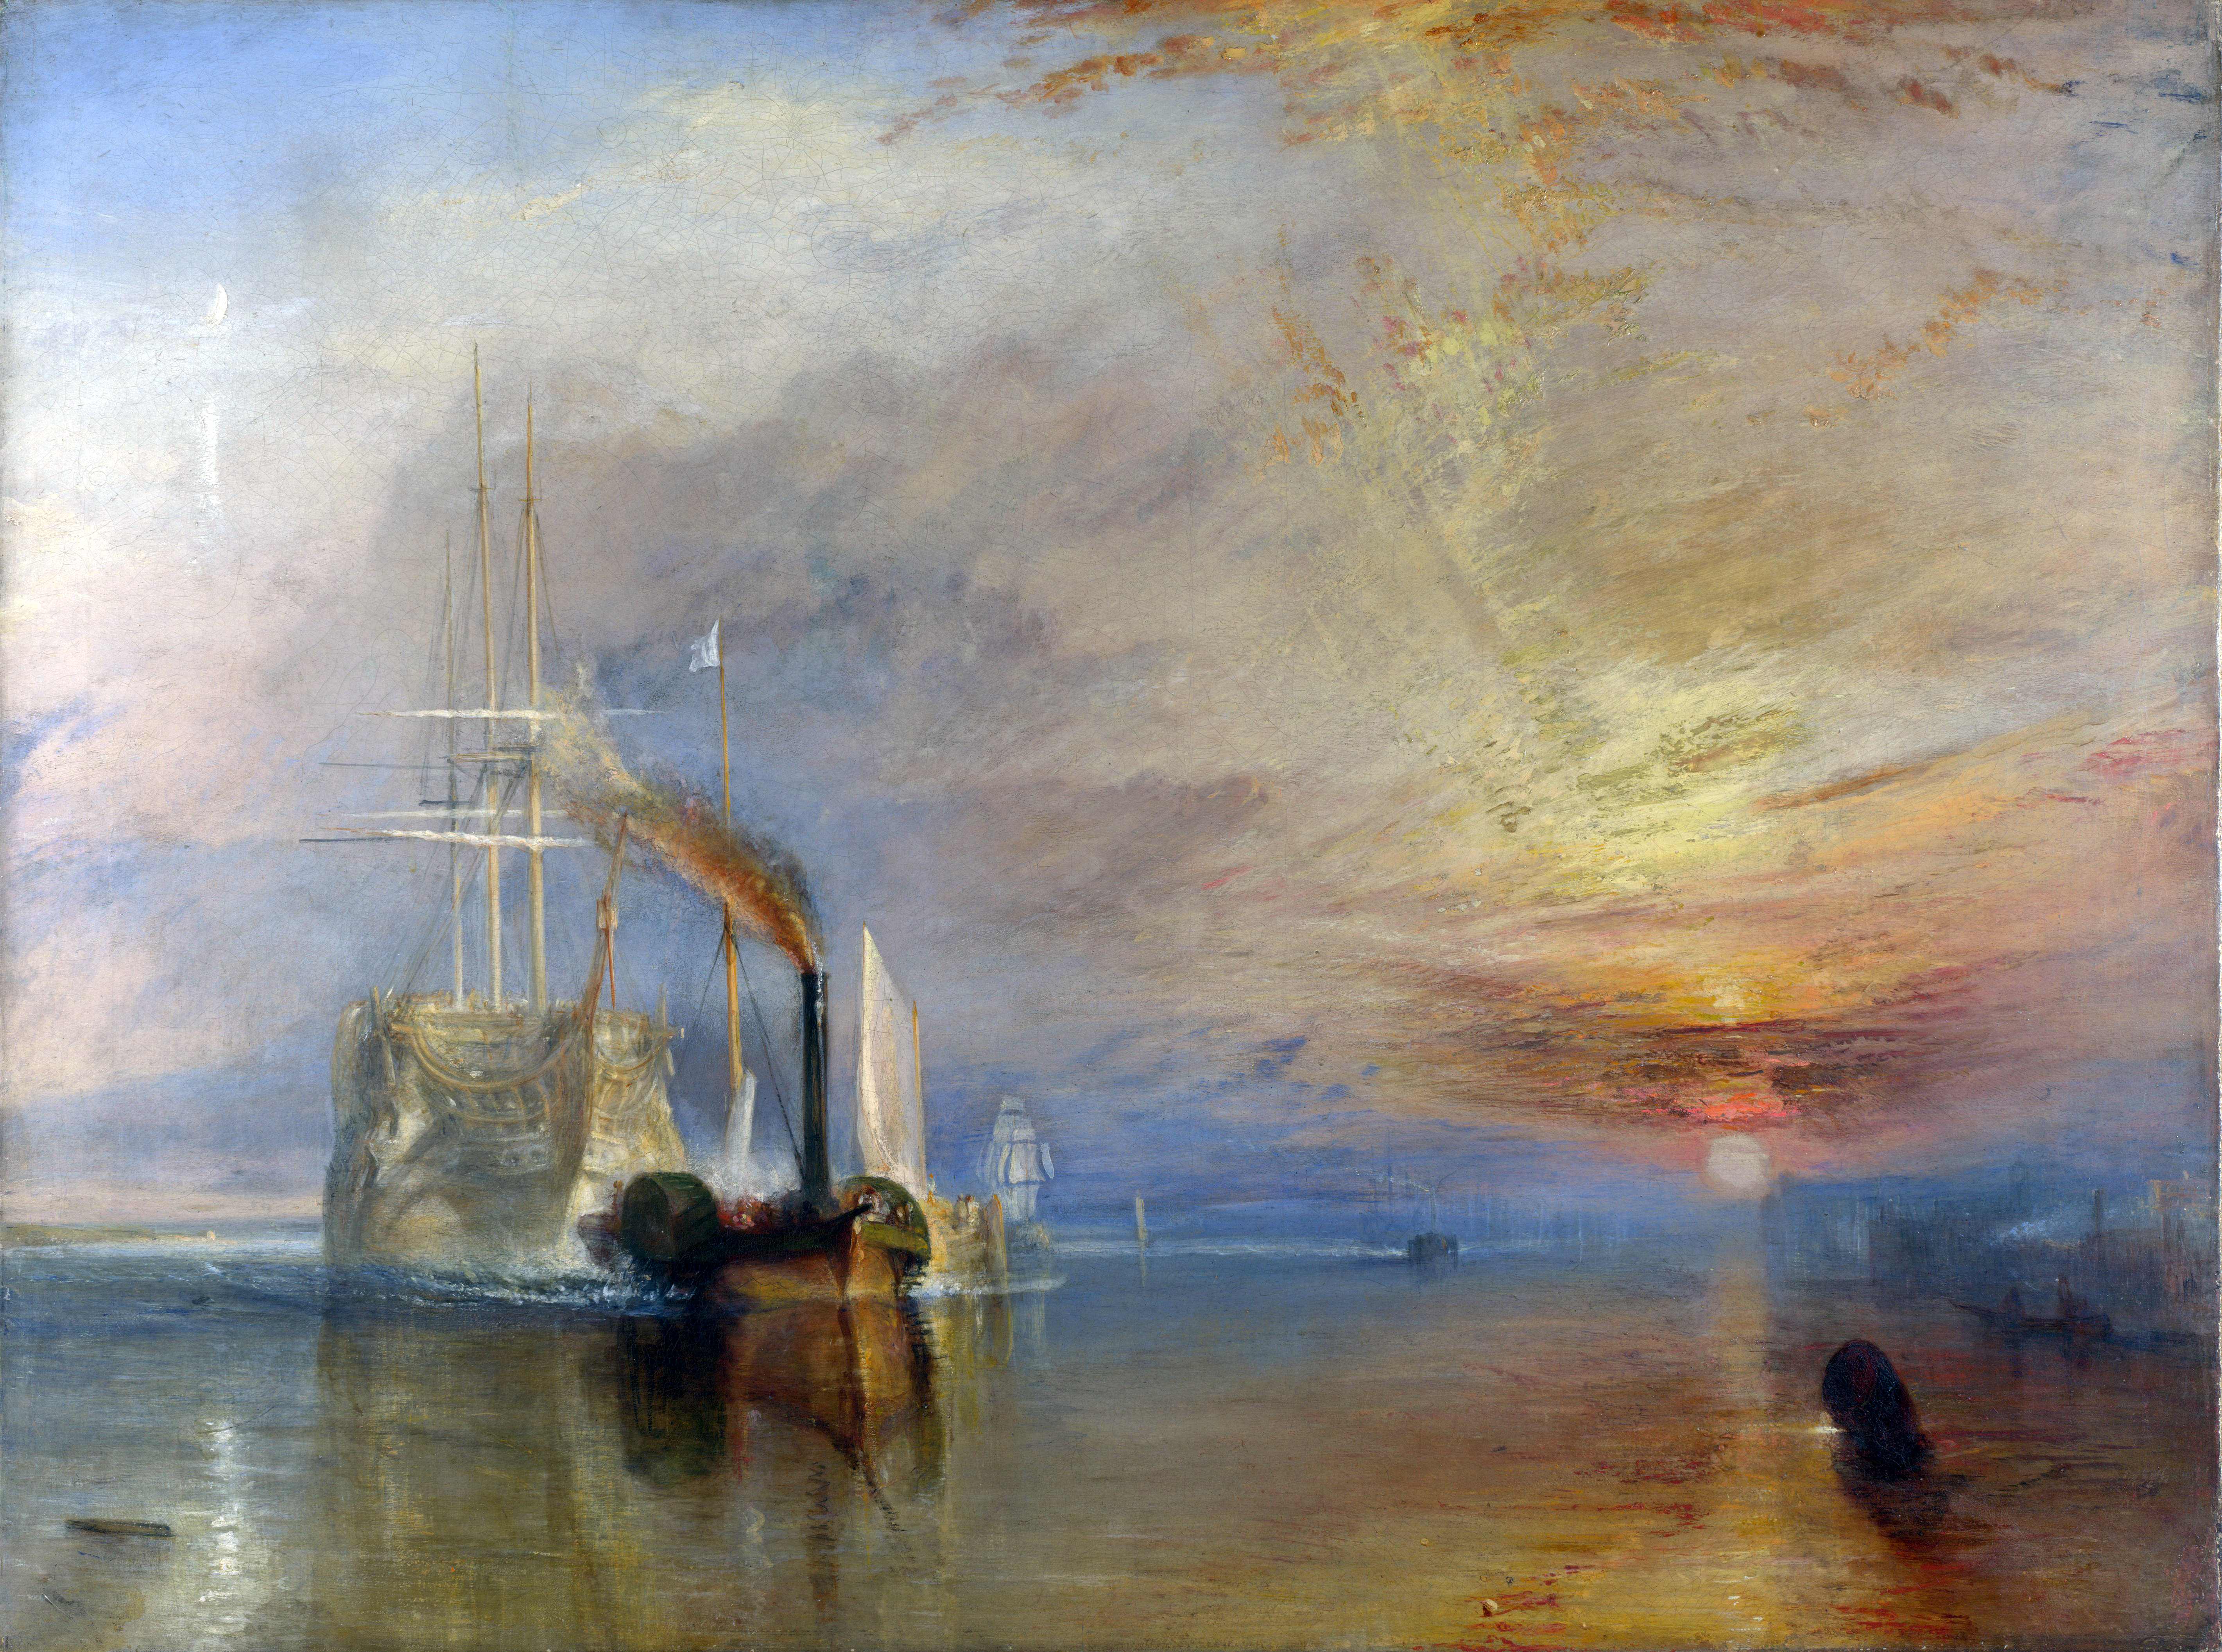 The painting The Fighting Temeraire Tugged to Her Last Berth to be Broken Up, 1838 by J. M. W. Turner. The painting depicts an idealized white galley ship being pulled from the right side of the painting by a dark tugboat. On the left of the painting is a red and yellow sunset.